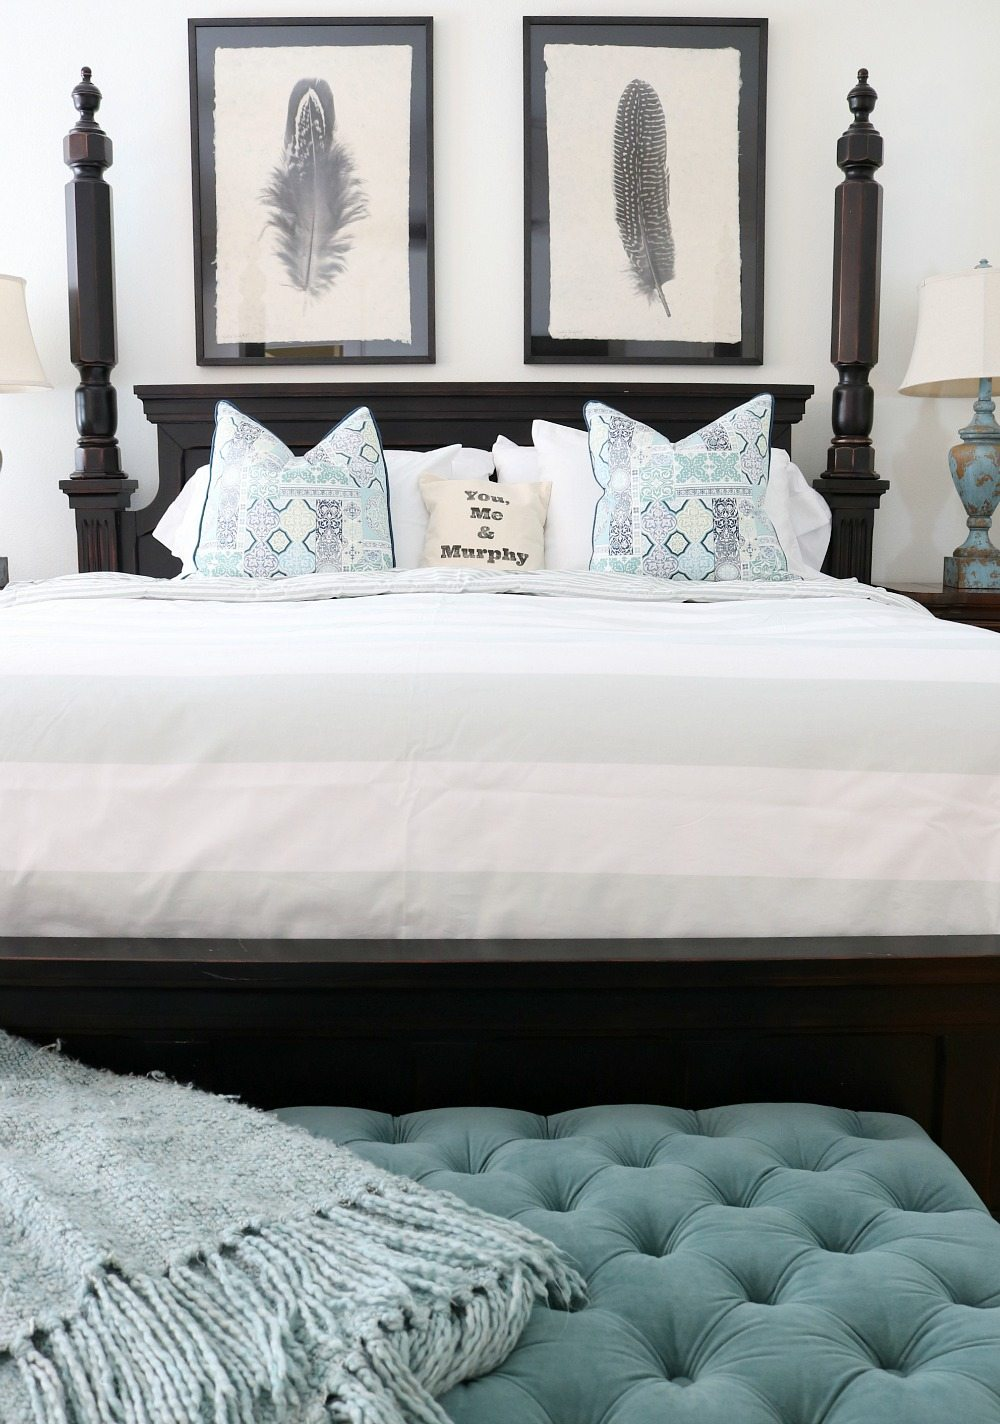 Feather prints are perfect for the farmhouse bedroom